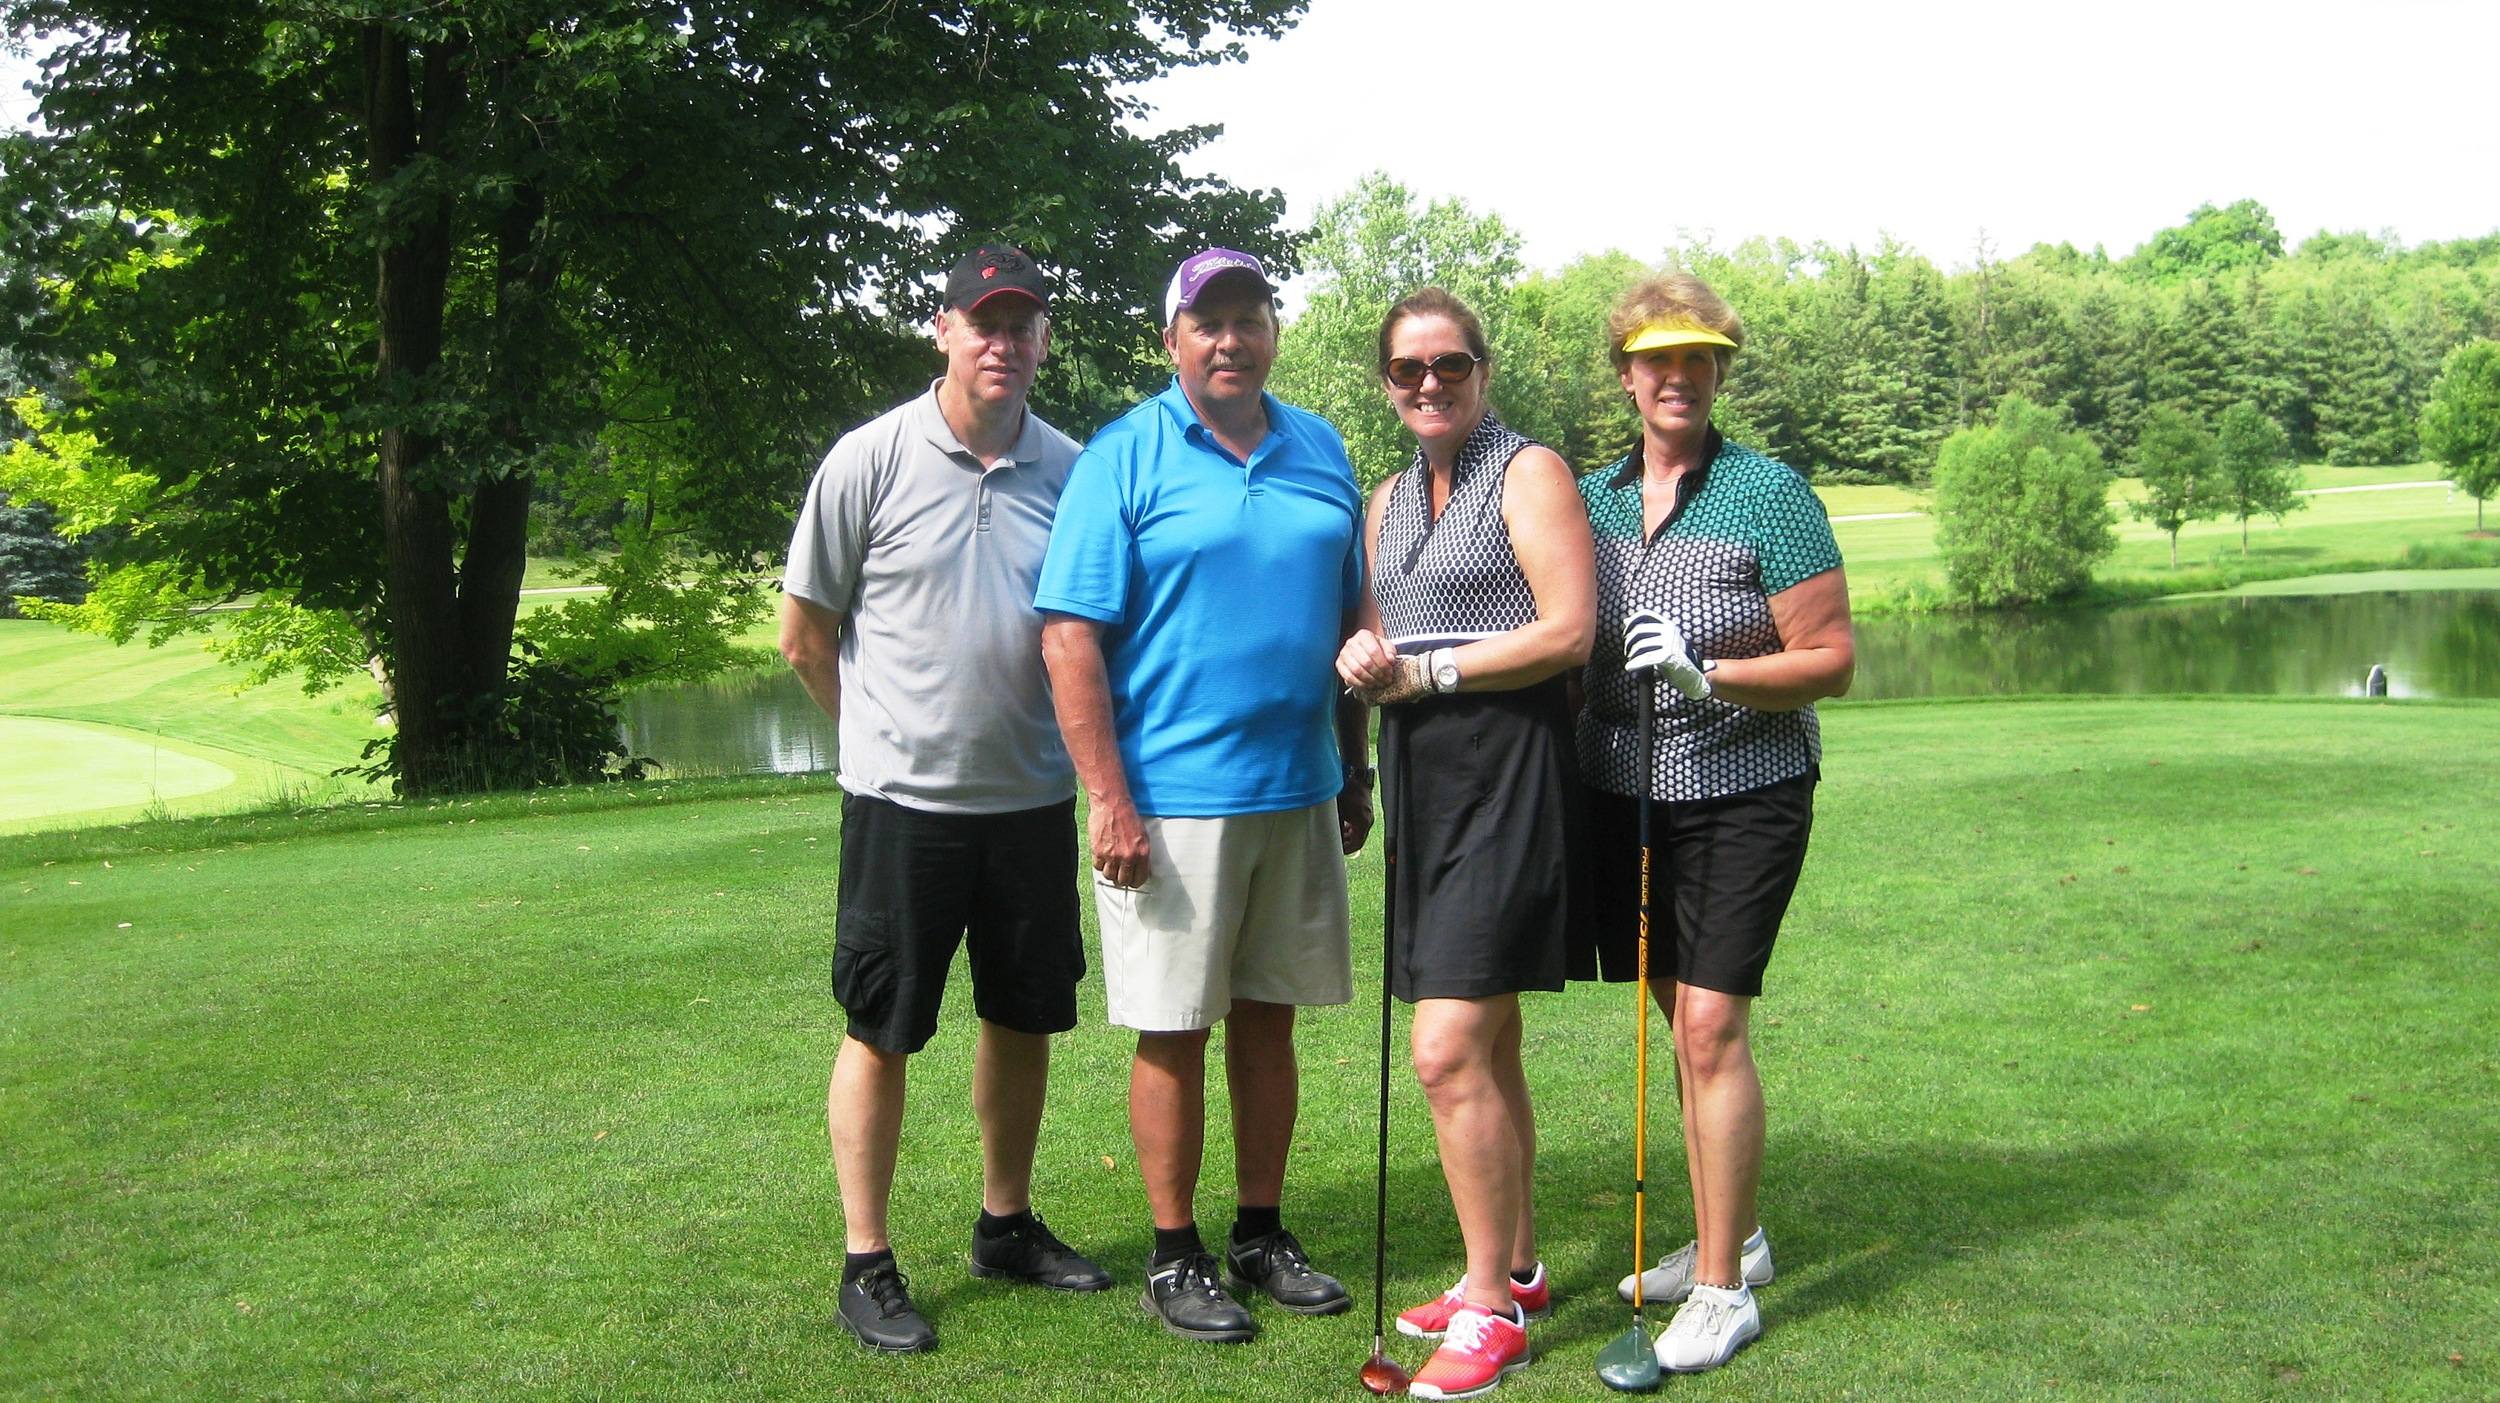 Ray, Jim, Lisa and Deb - go for the hole-in-one